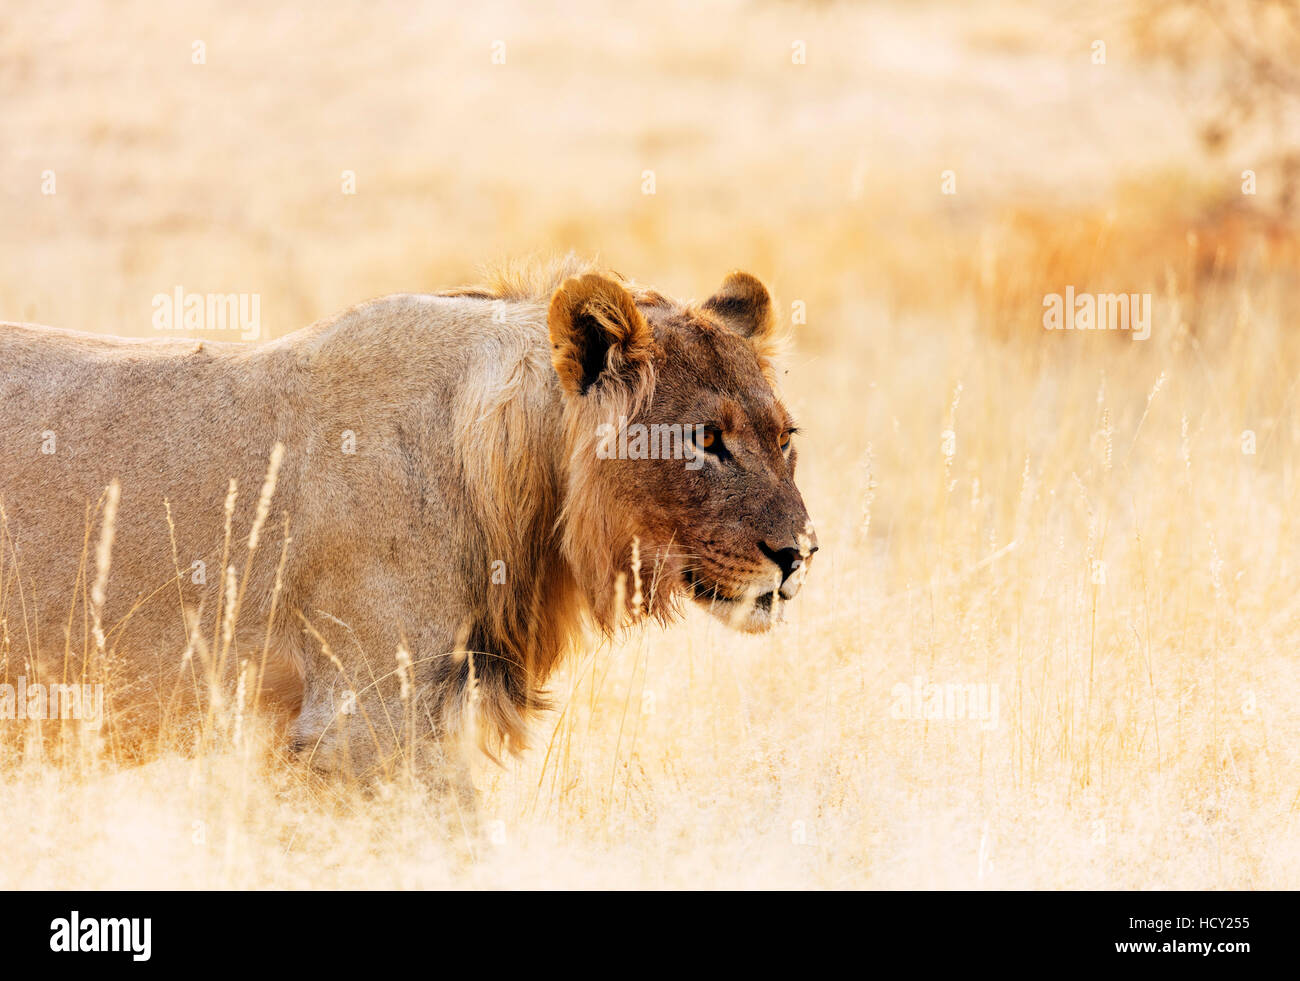 Young lion (Panthera leo), Kgalagadi Transfrontier Park, Kalahari, Northern Cape, South Africa, Africa Stock Photo